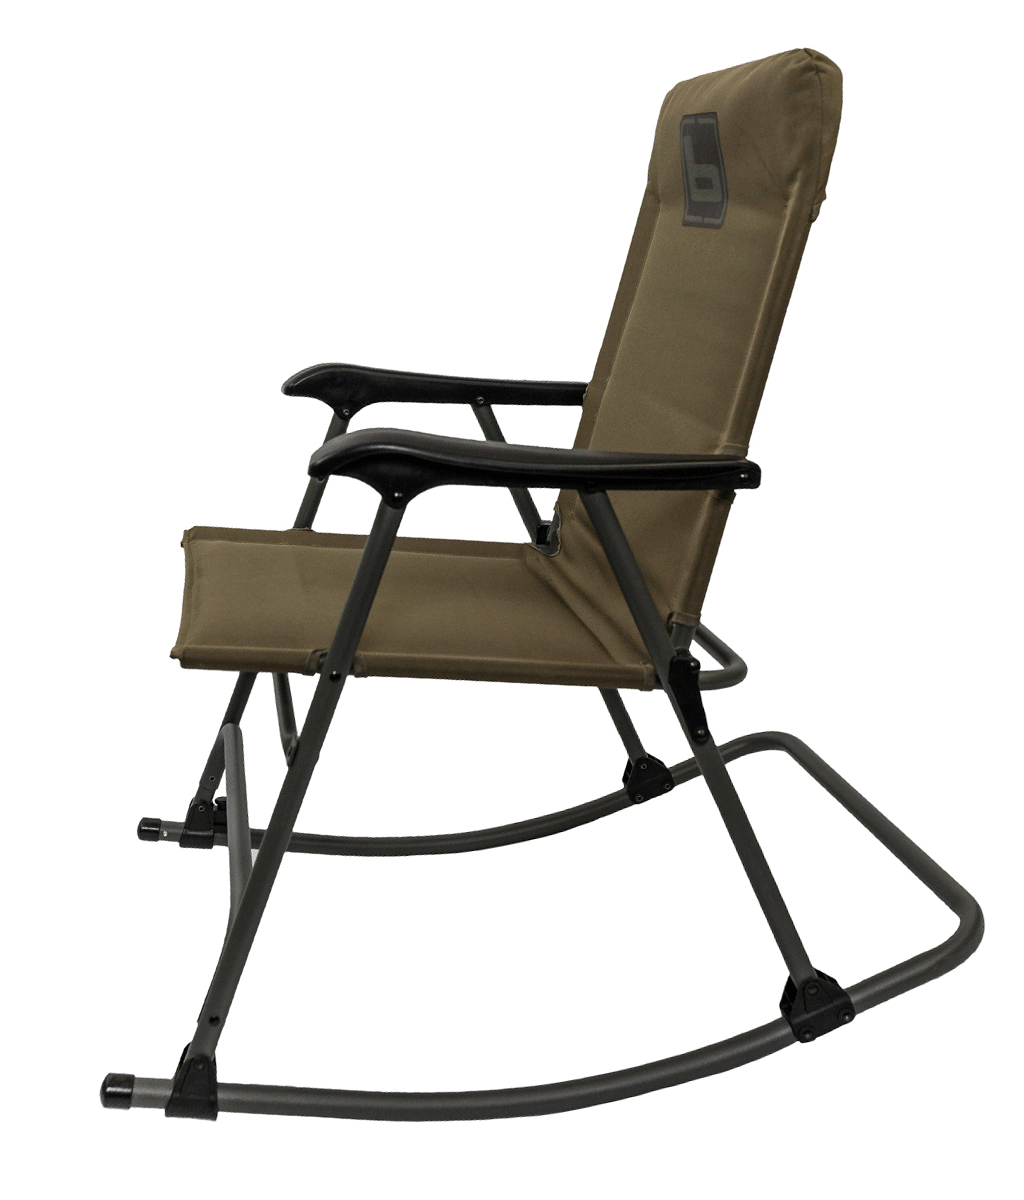 Banded Folding Rocking Chair Olive Green Outdoor Folding Rocking Lawn Chair